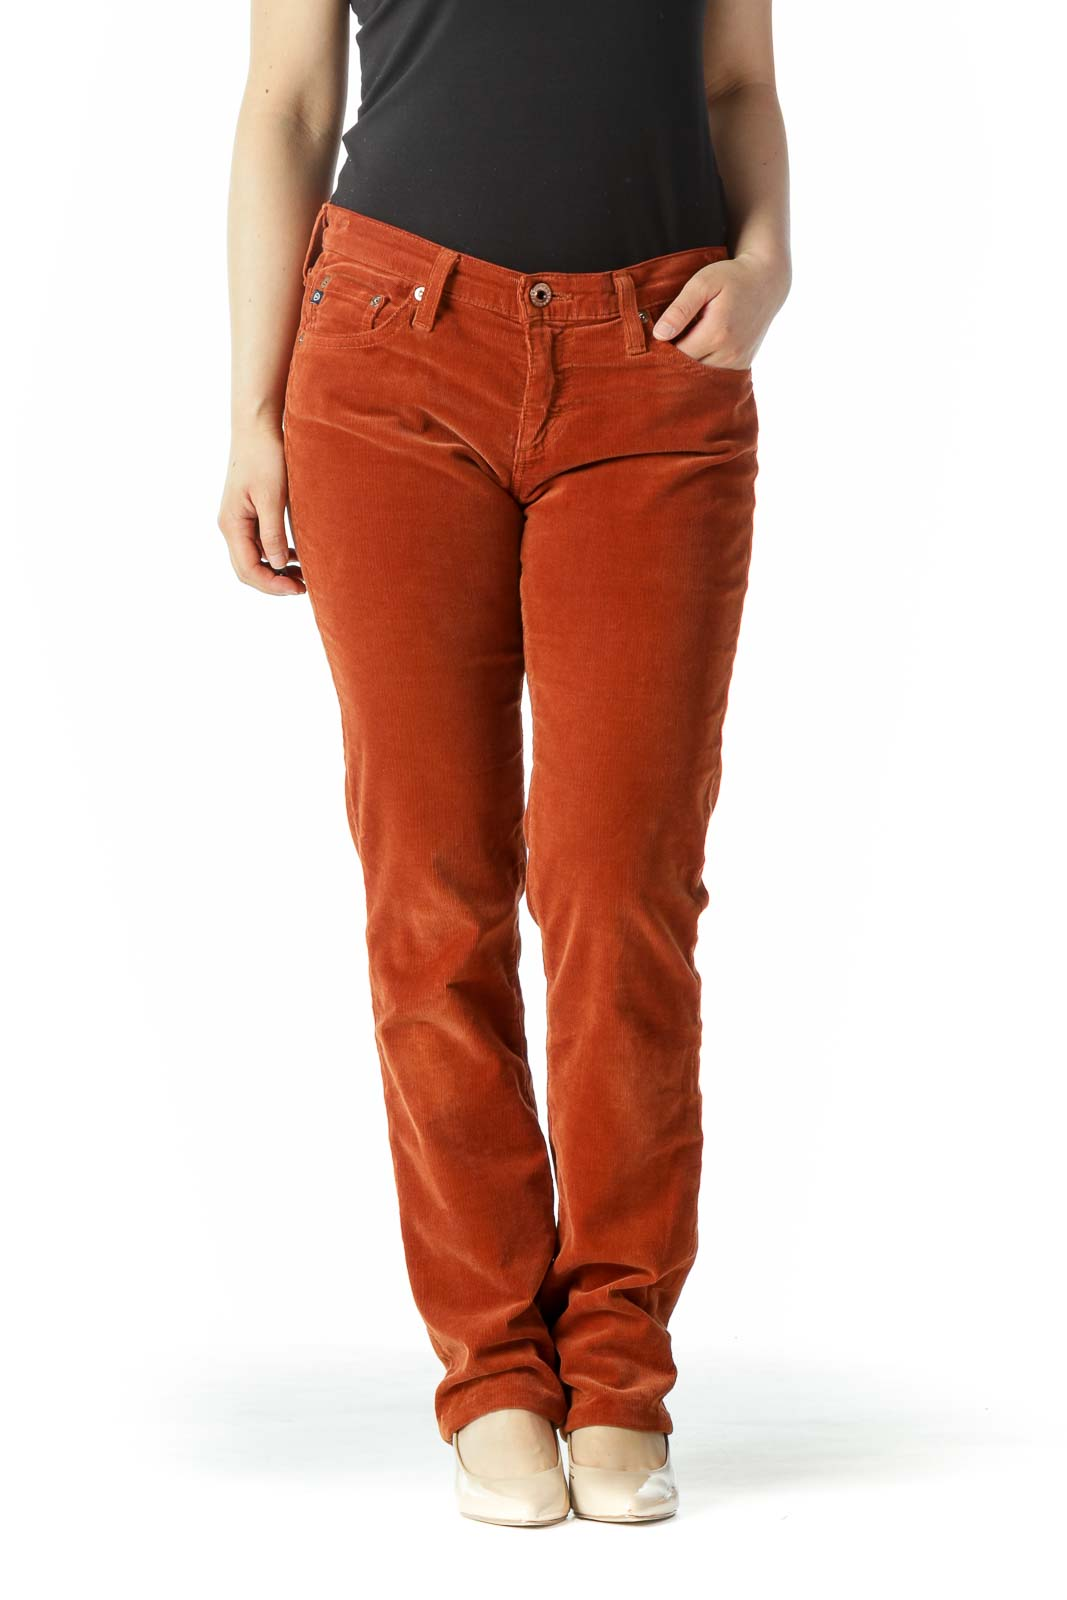 Burnt Orange Corduroy Slim Straight-Leg Stretch Pants